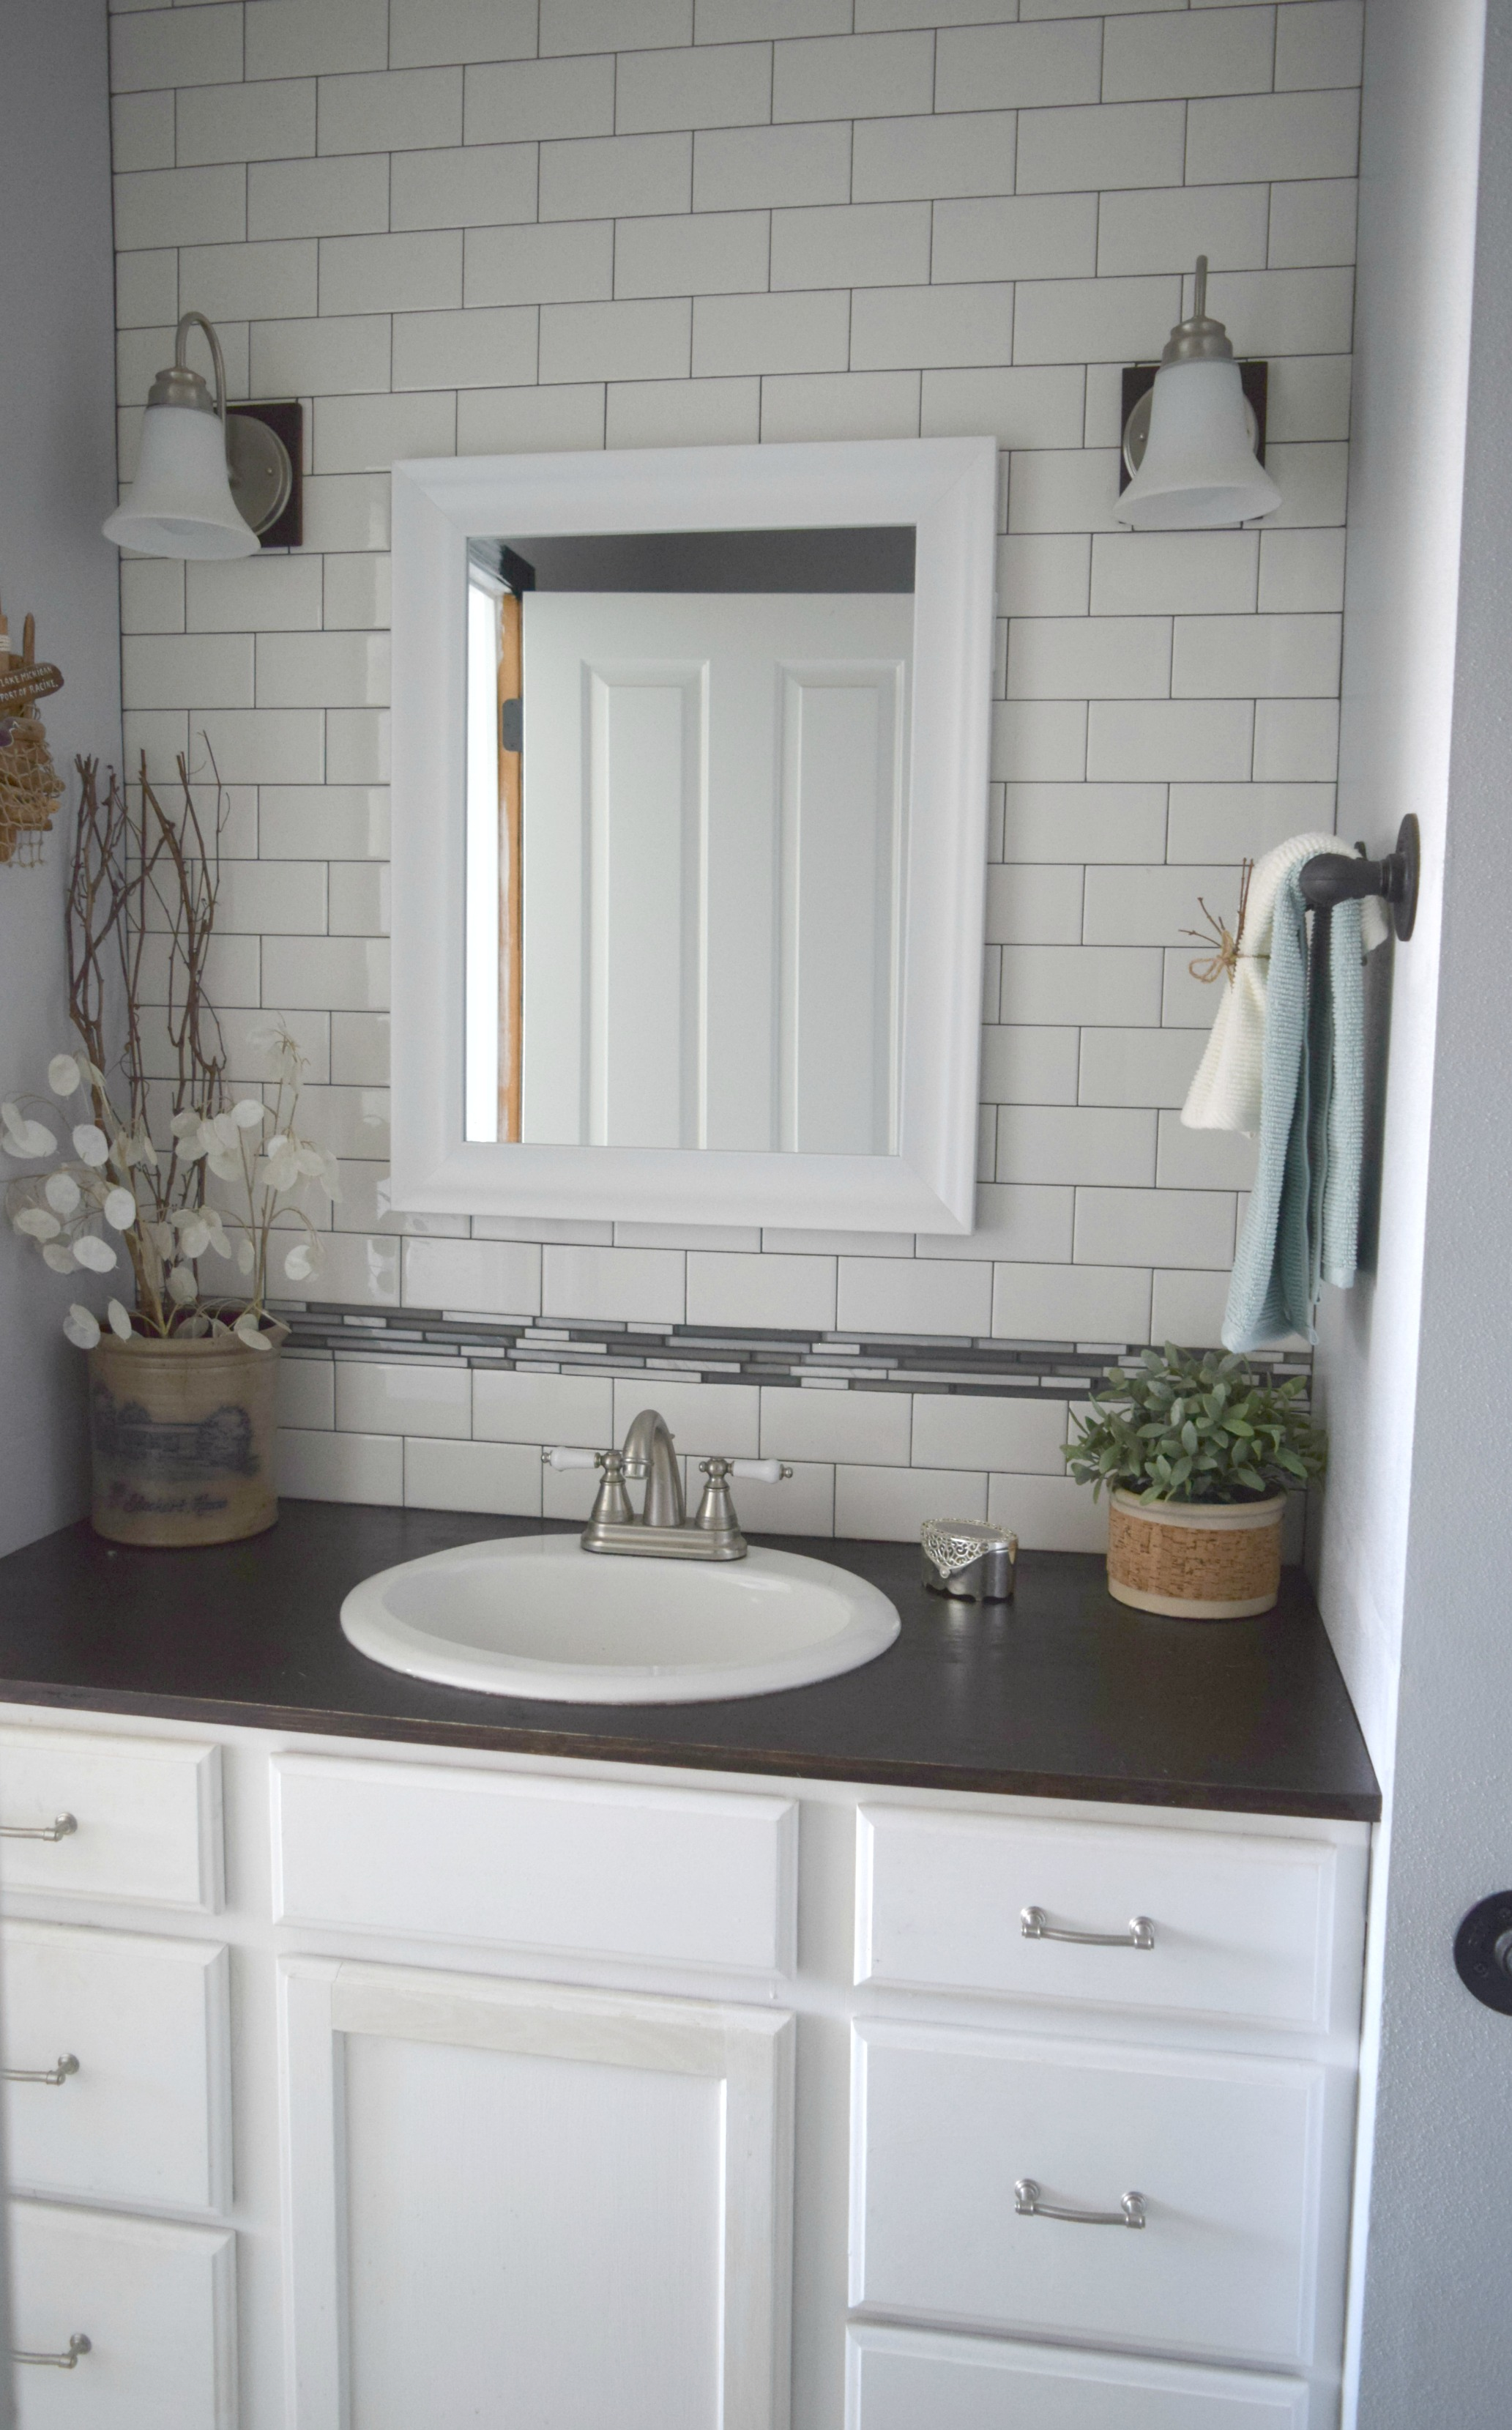 Bathroom and Kitchen Renovations You Can Afford • Our House Now a Home